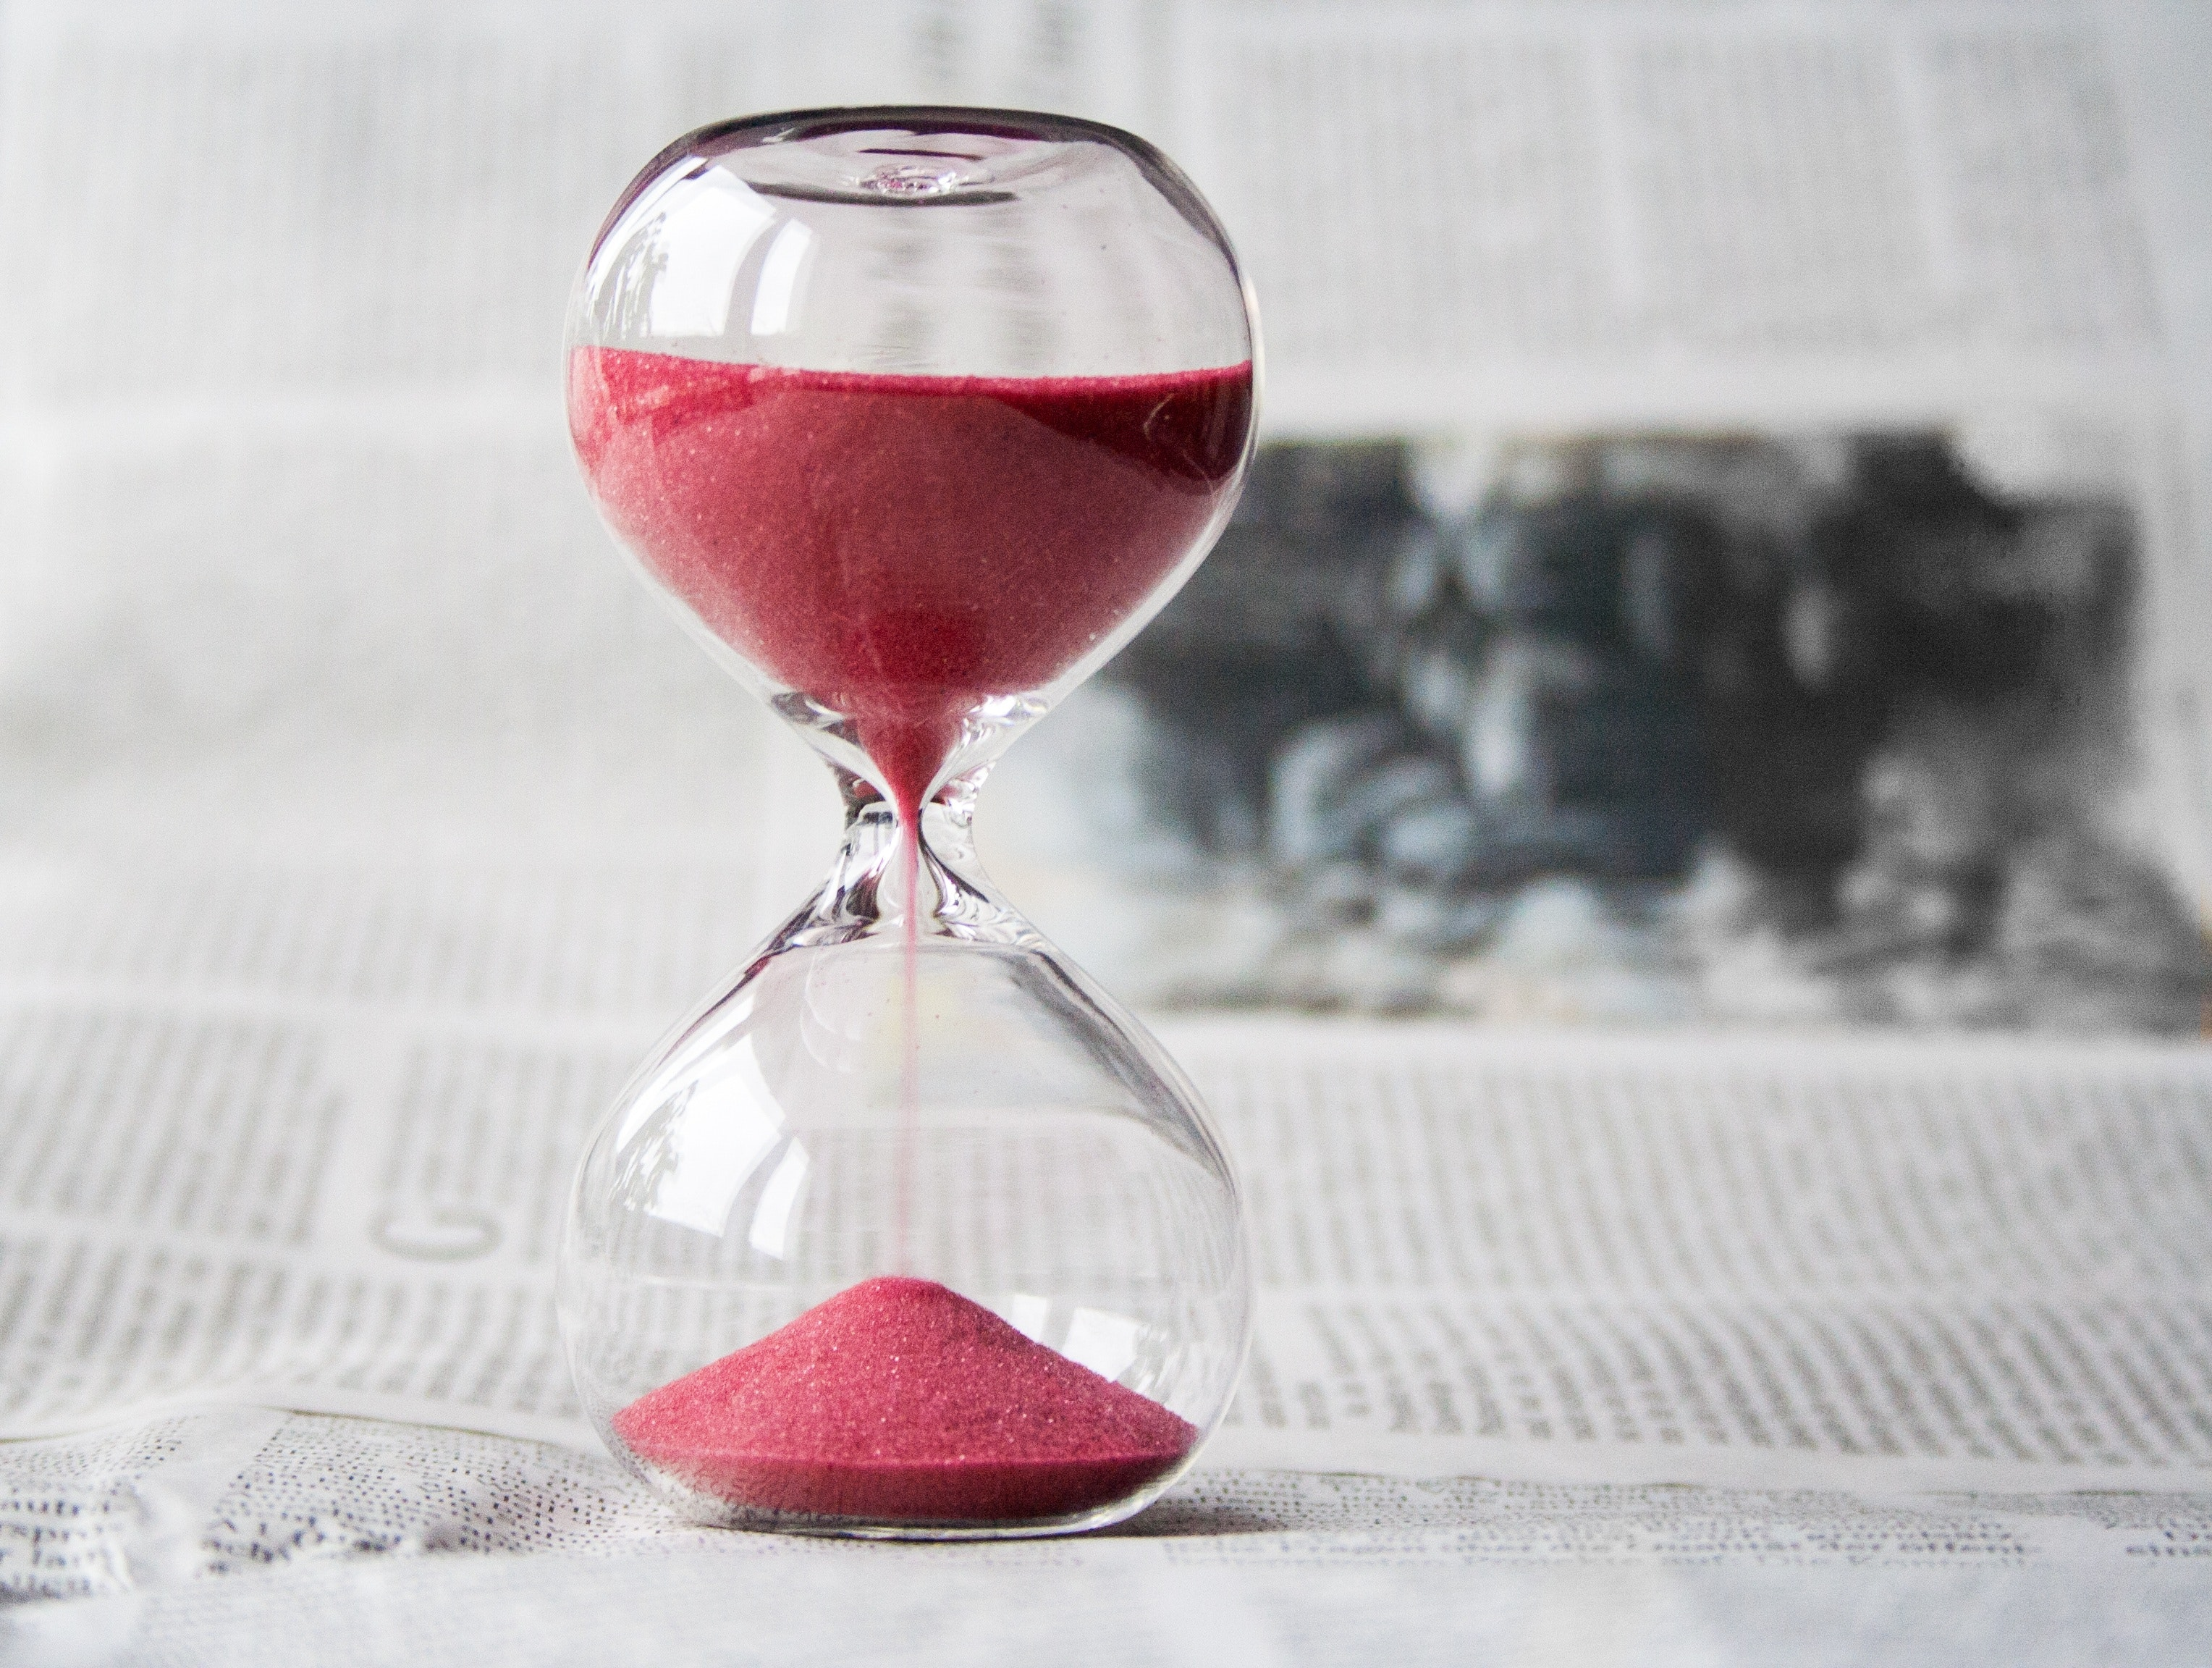 The Simple Way To Master The Art Of Timing (So You're Never Too Soon Or Too Late) Dre Baldwin DreAllDay.com